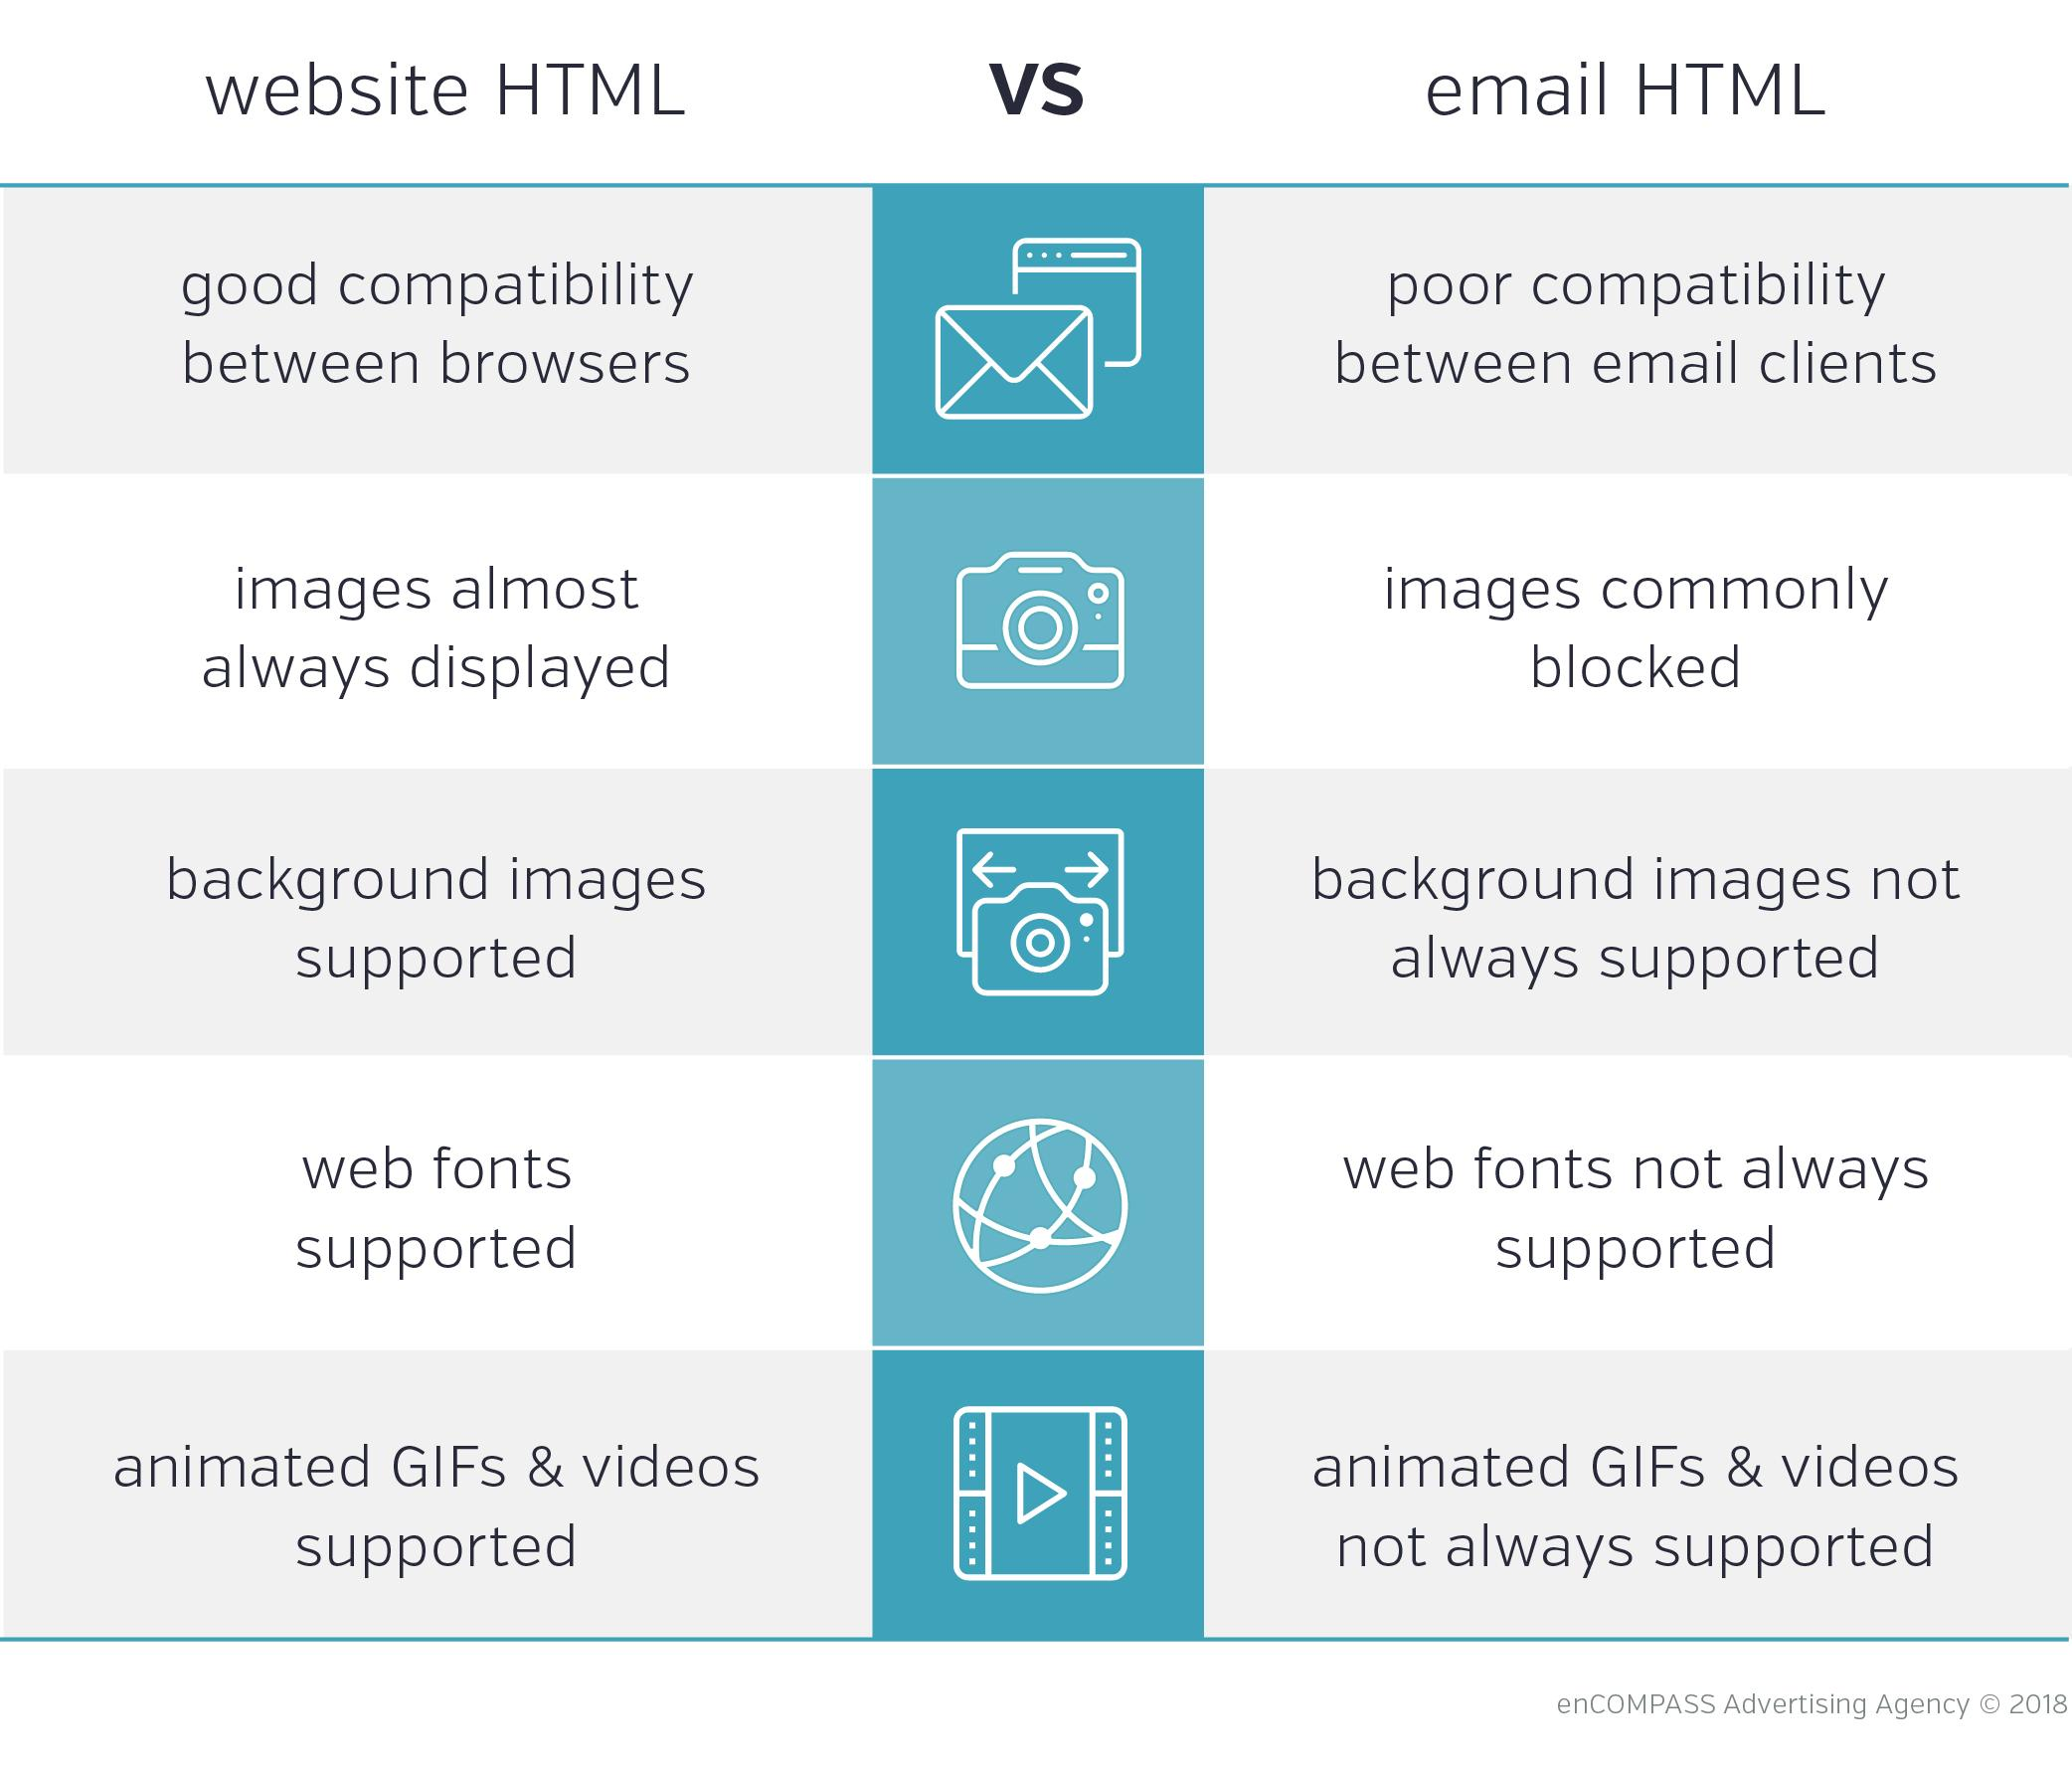 Website HTML vs. Email HTML